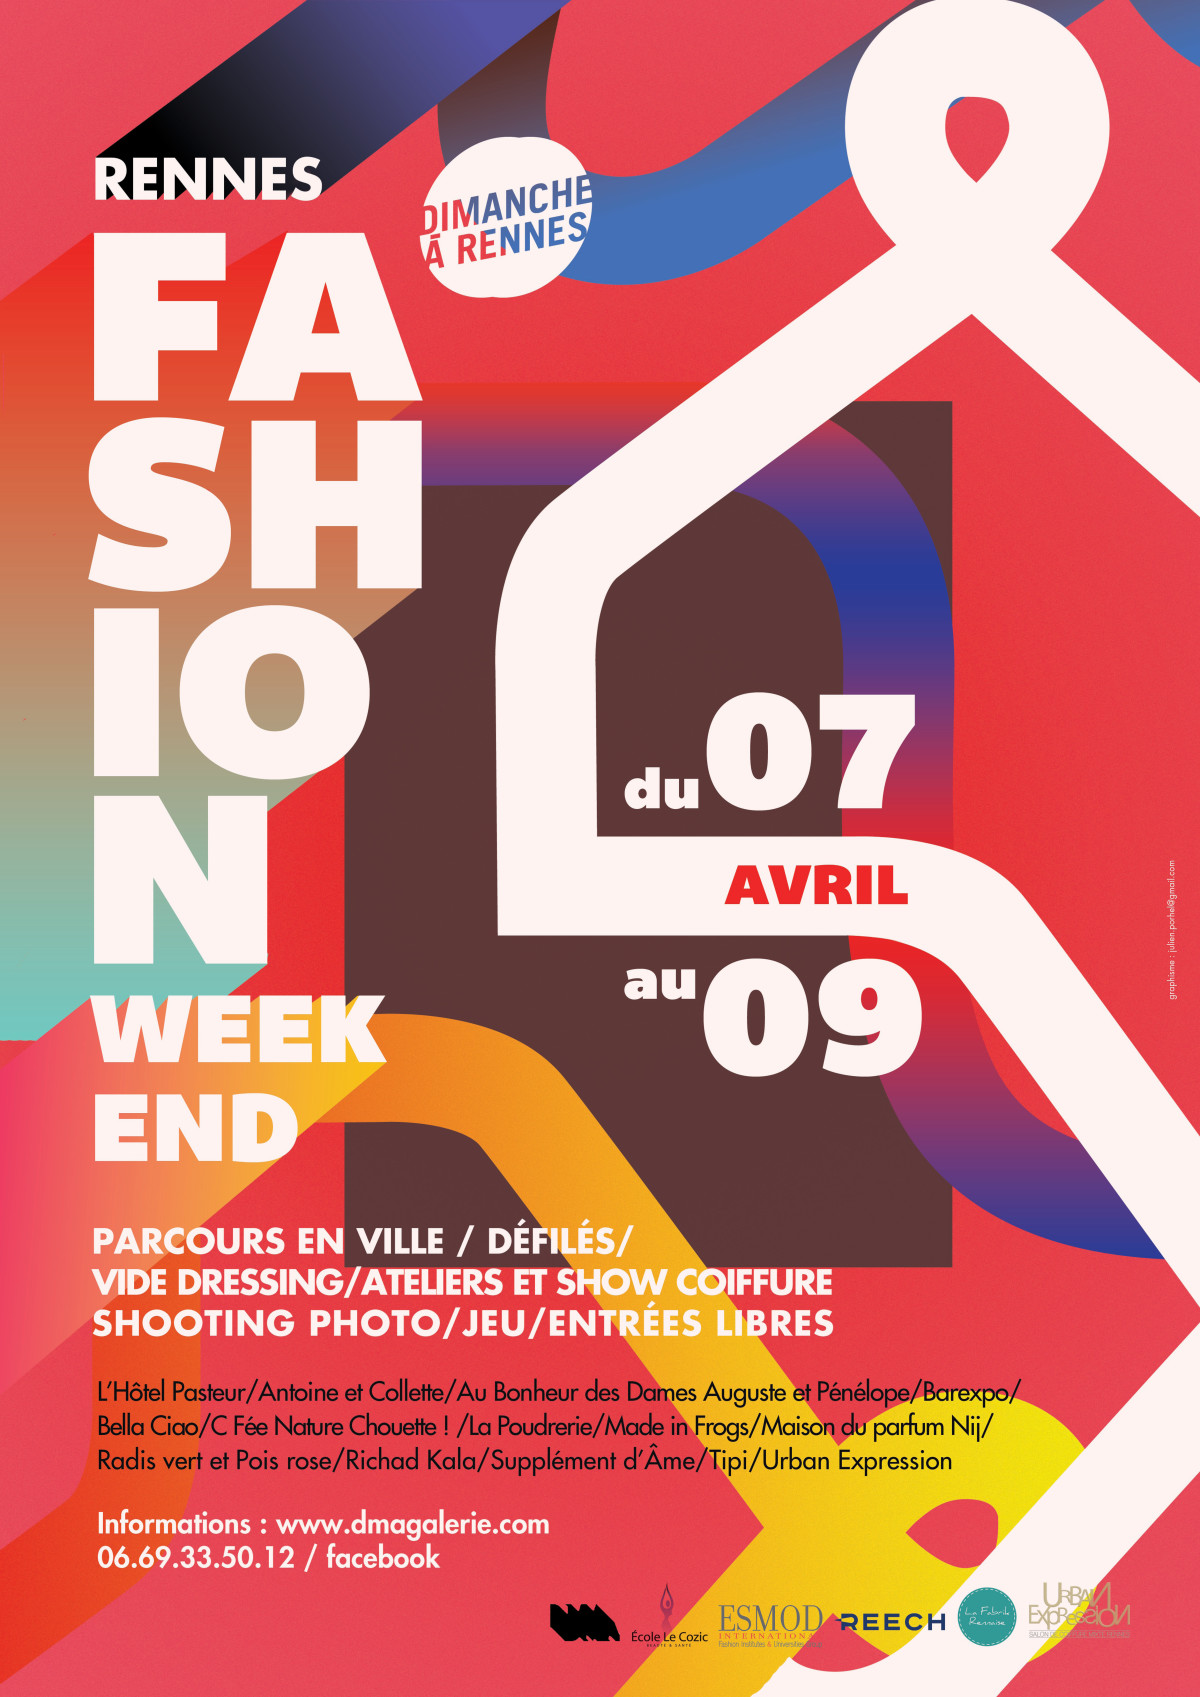 FASHION WEEK-END 7-9 avril 2017